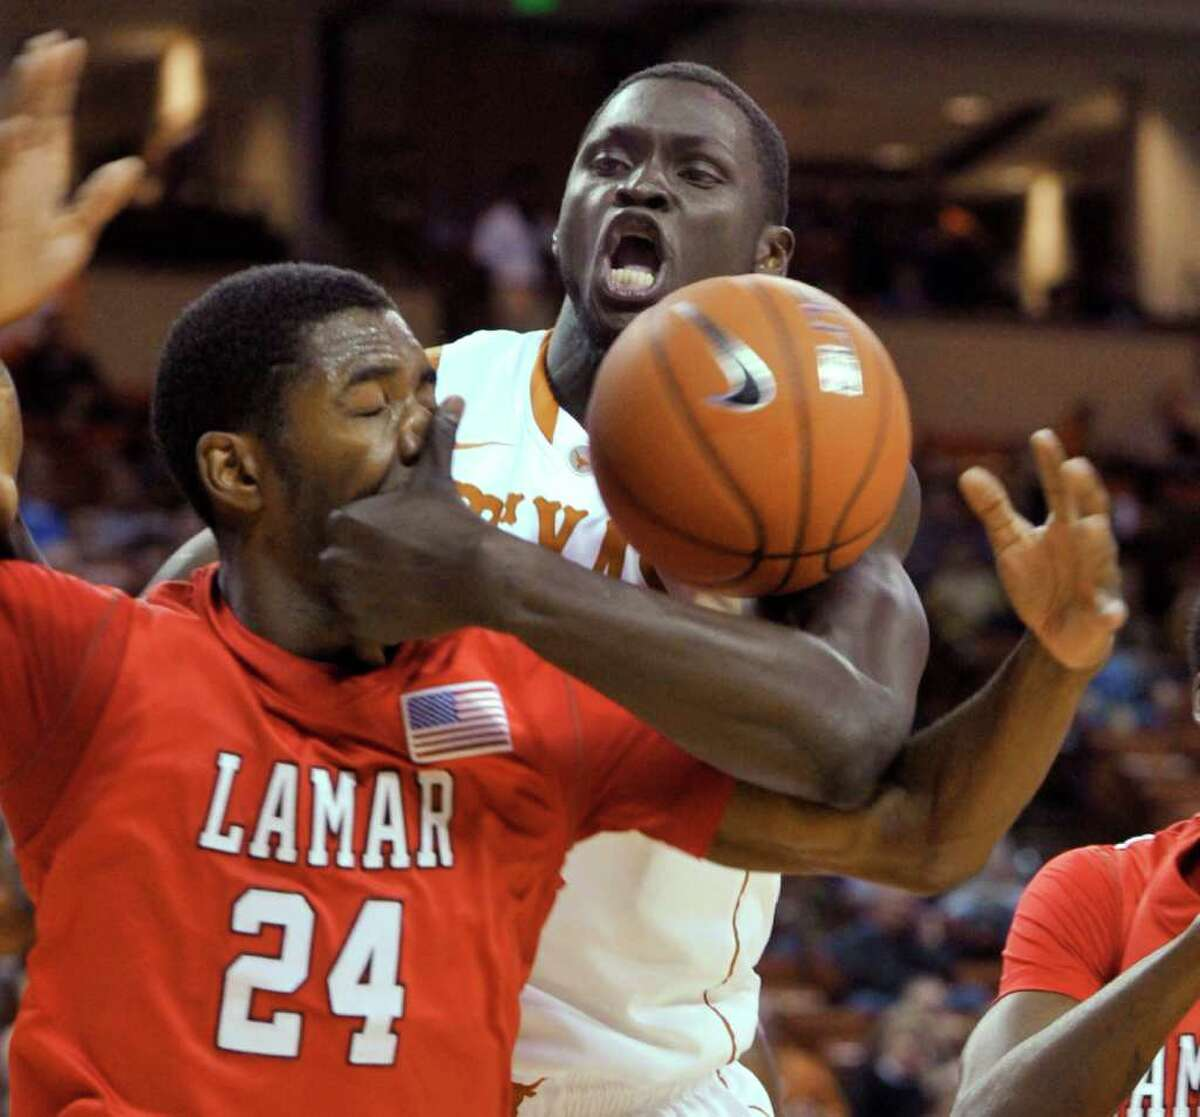 Texas forward Alexis Wangmene, rear, comes into close contact with Lamar forward Vincenzo Nelson while fighting for a loose ball during the first half of an NCAA college basketball game in Austin, Texas, Wednesday, Dec. 1, 2010. (AP Photo/Michael Thomas)